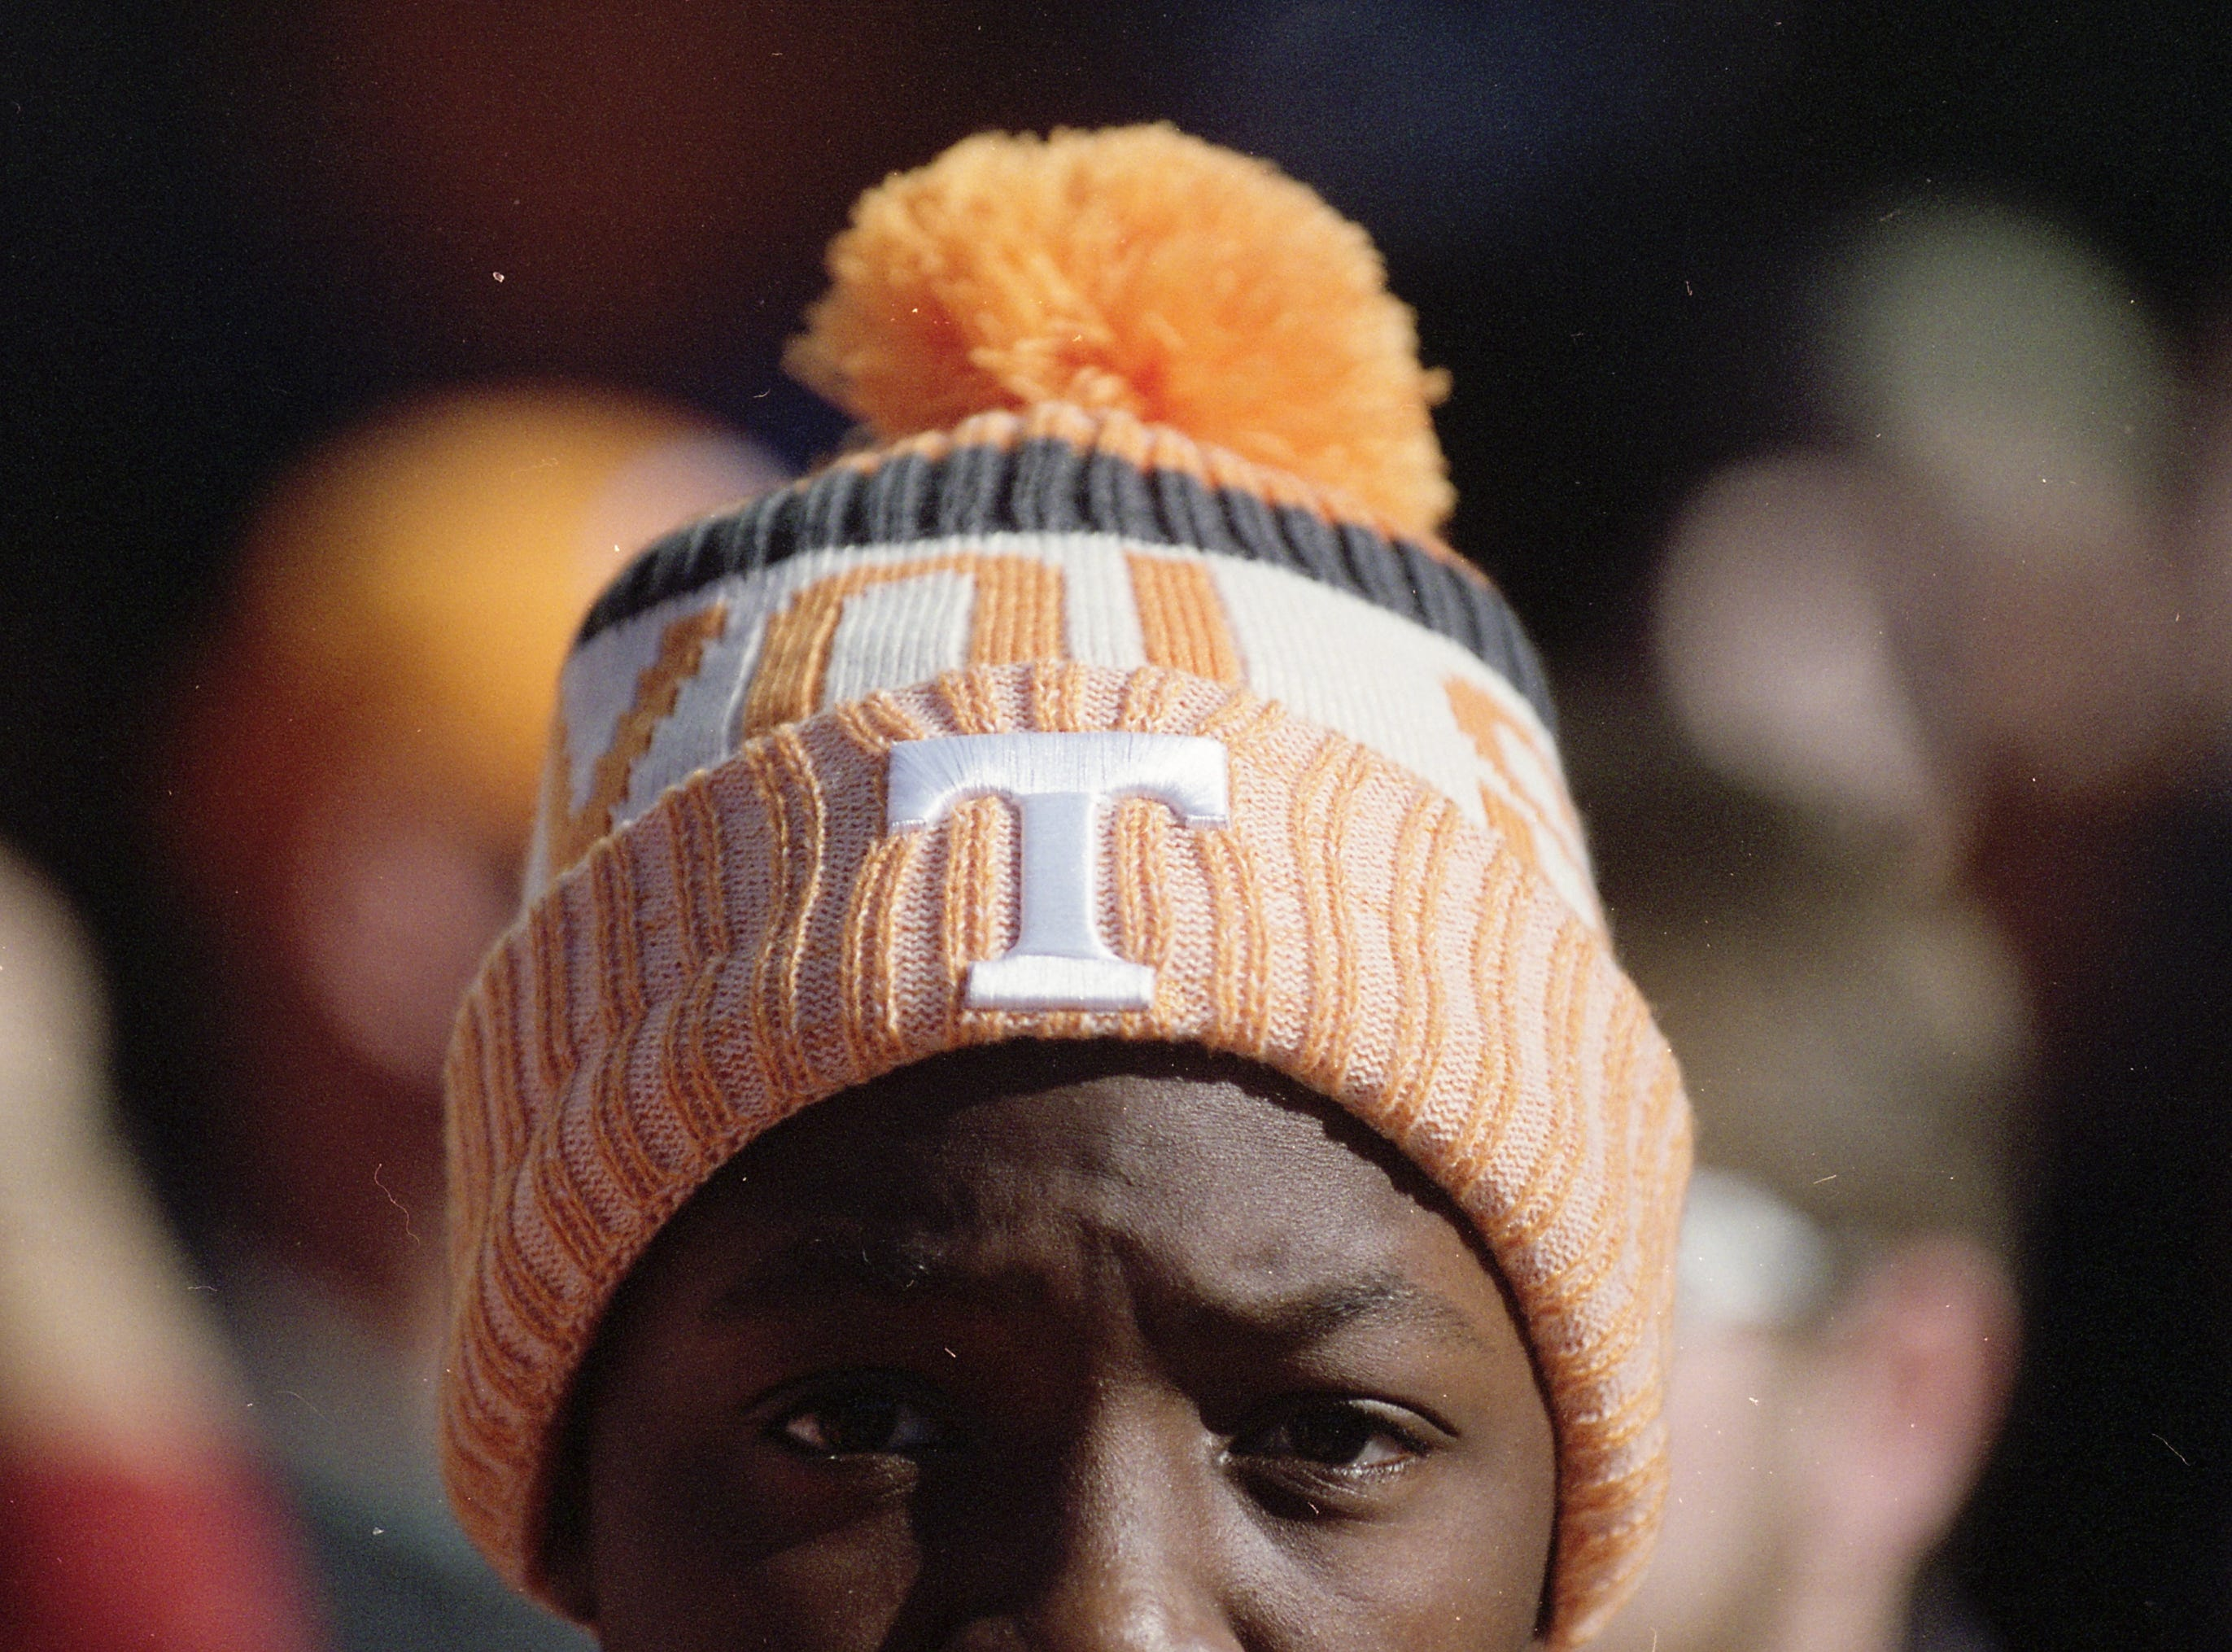 A Tennessee fan stays warm with a hat during the Vol Walk during a game between Tennessee and Missouri at Neyland Stadium in Knoxville, Tennessee on Saturday, November 17, 2018.